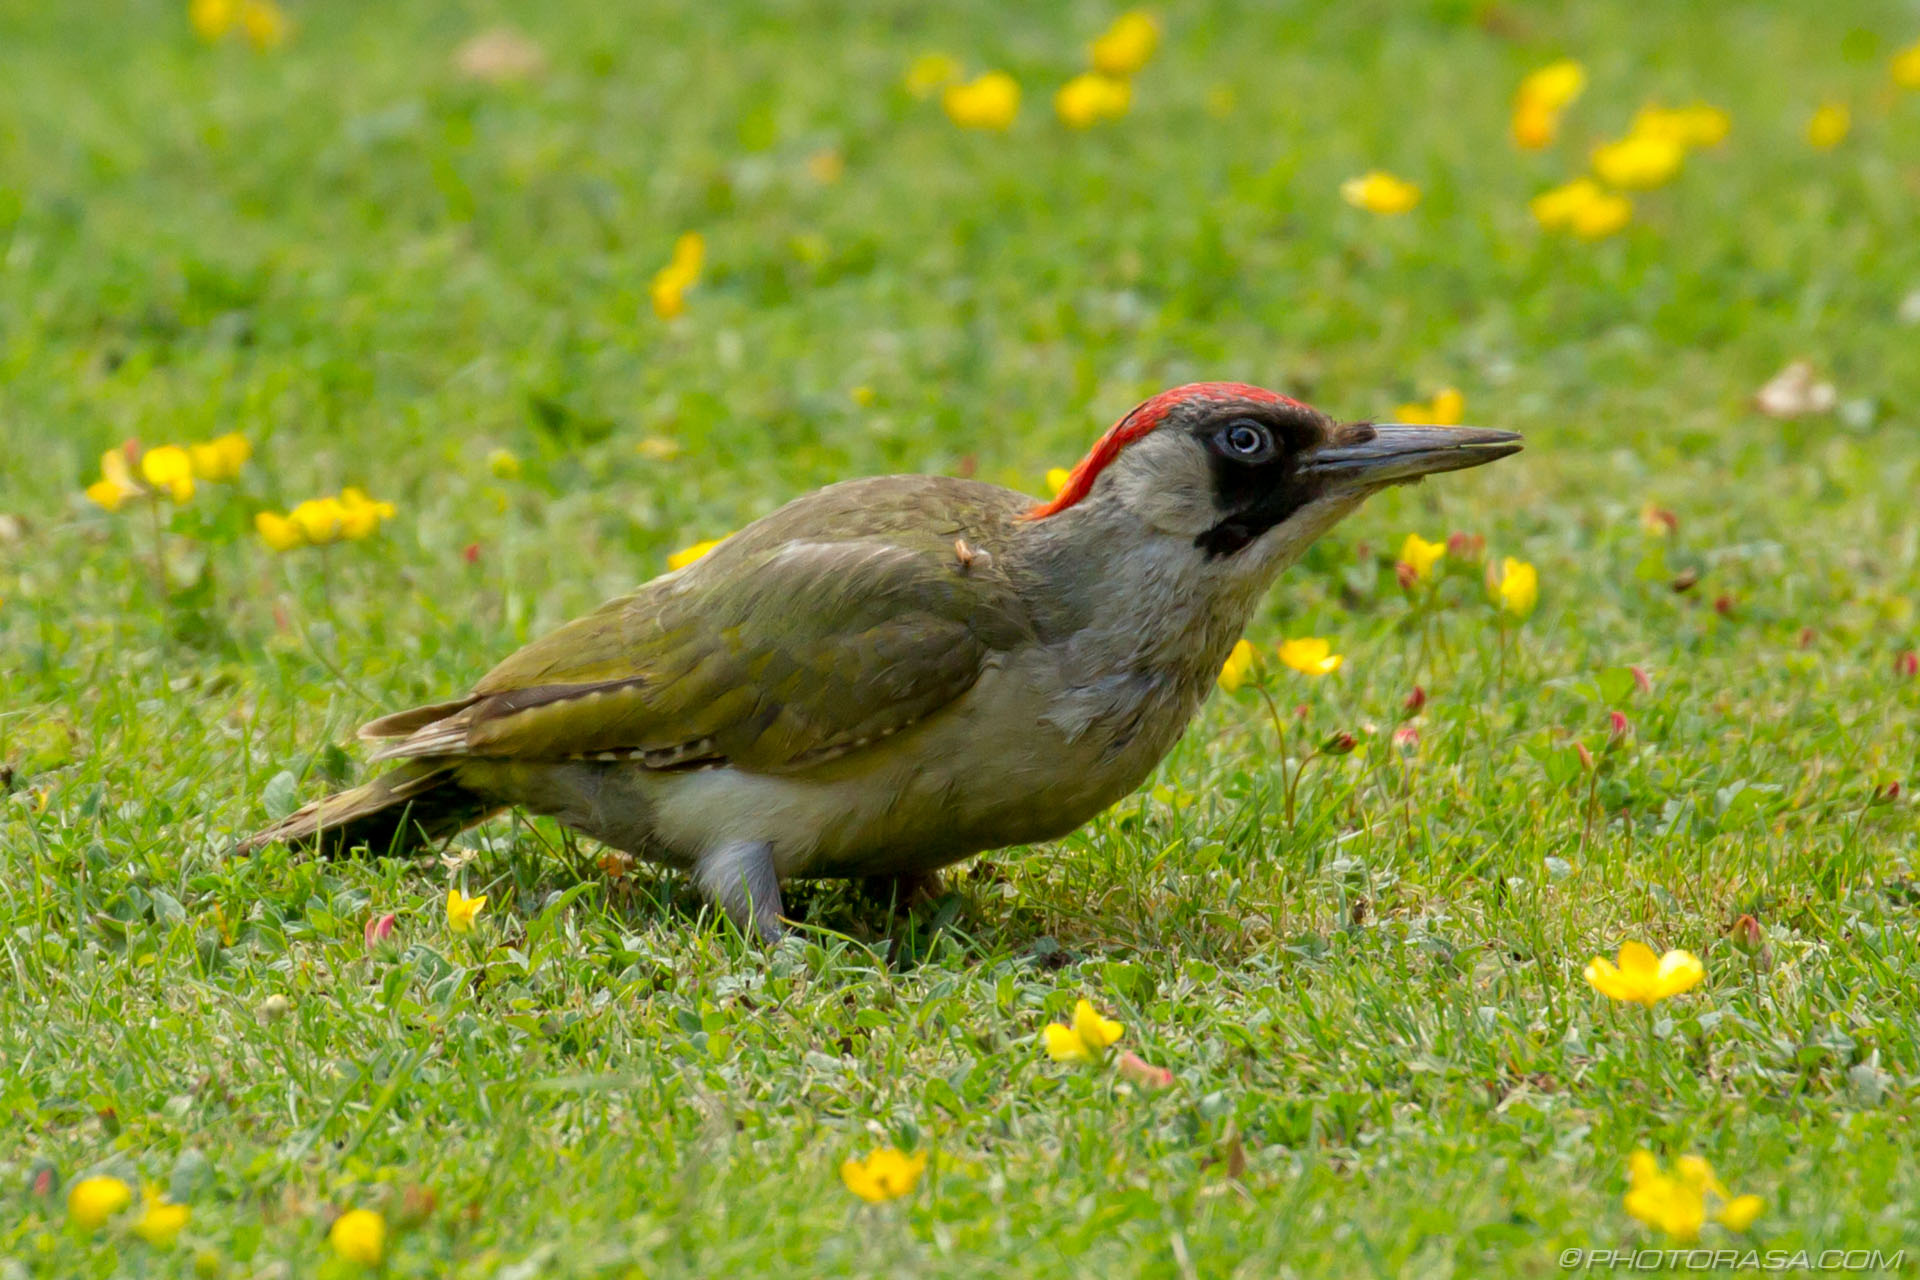 http://photorasa.com/green-woodpecker/looking-around-2/